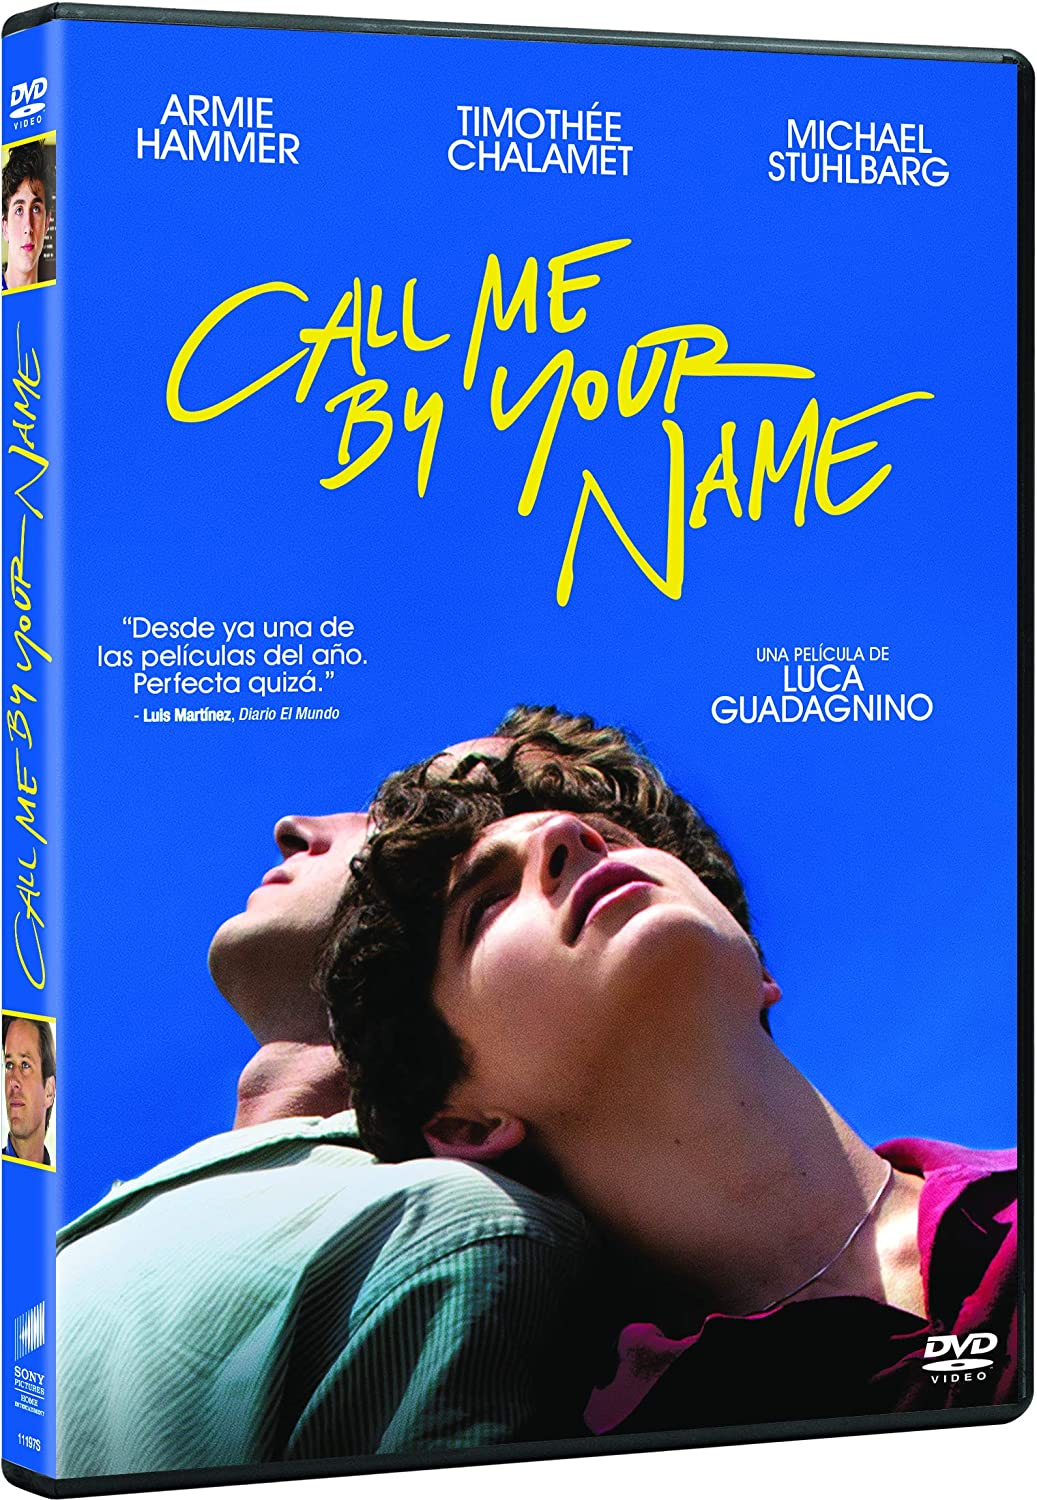 Call Me By Your Name Spanish Release Amazon Co Uk Armie Hammer Timothee Chalamet Dvd Blu Ray